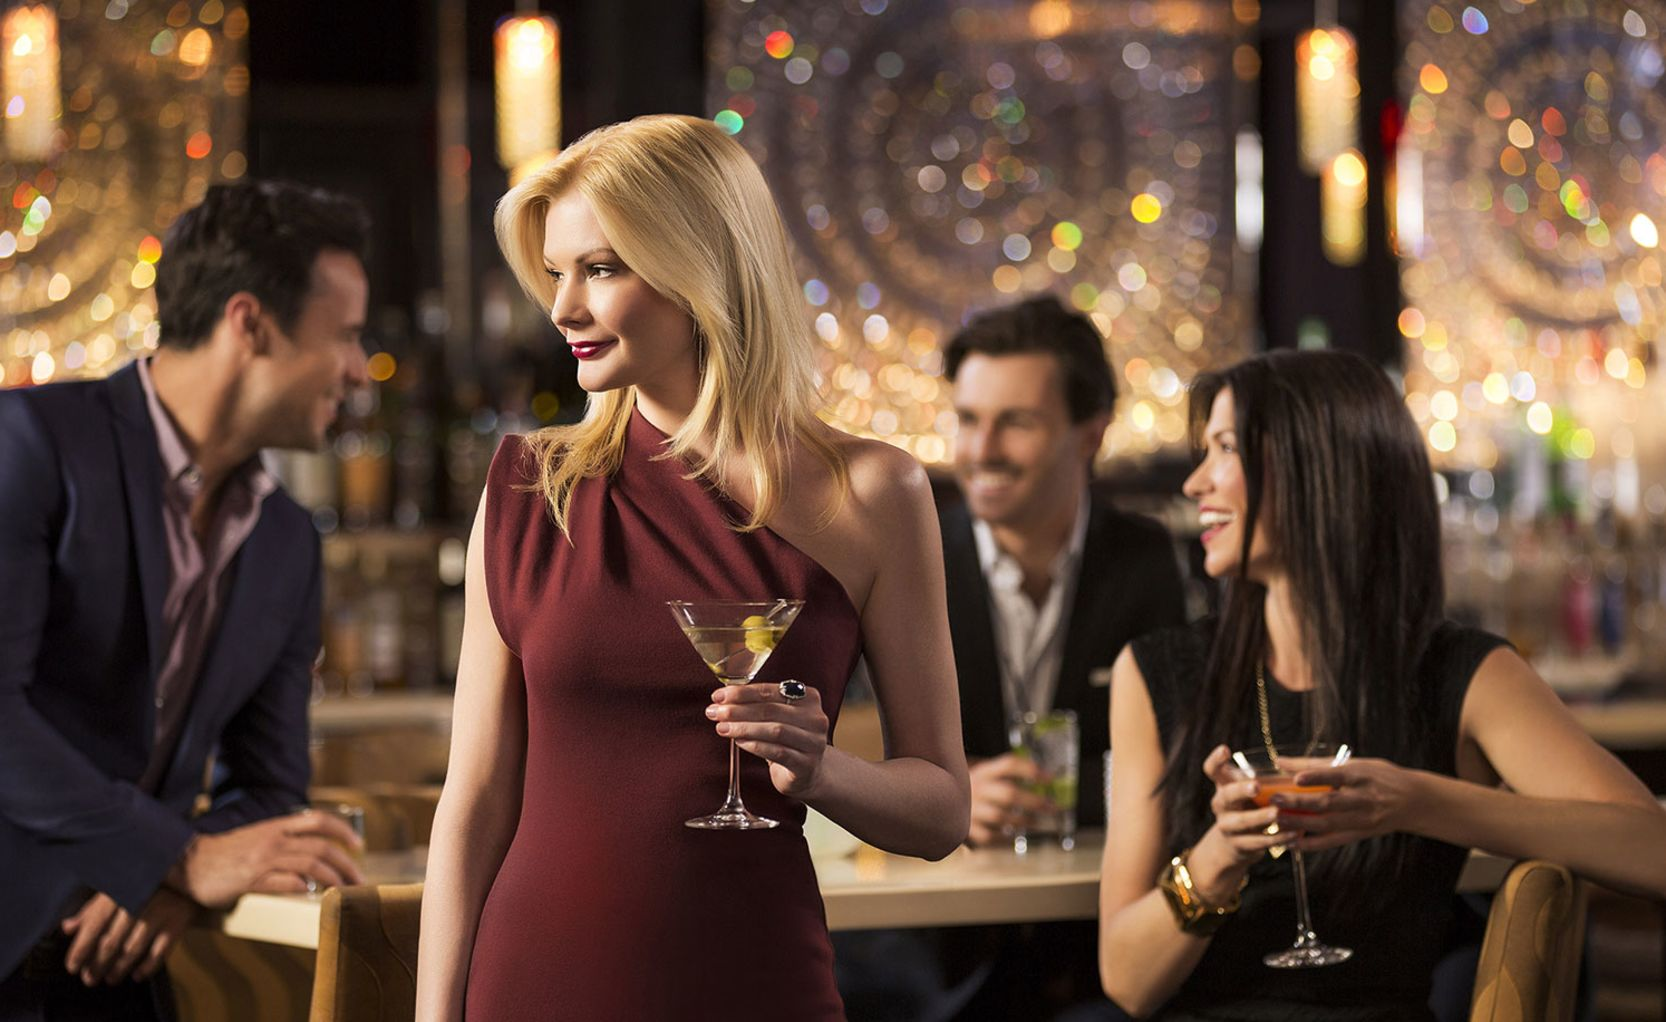 Blonde Woman with Martini at Bar